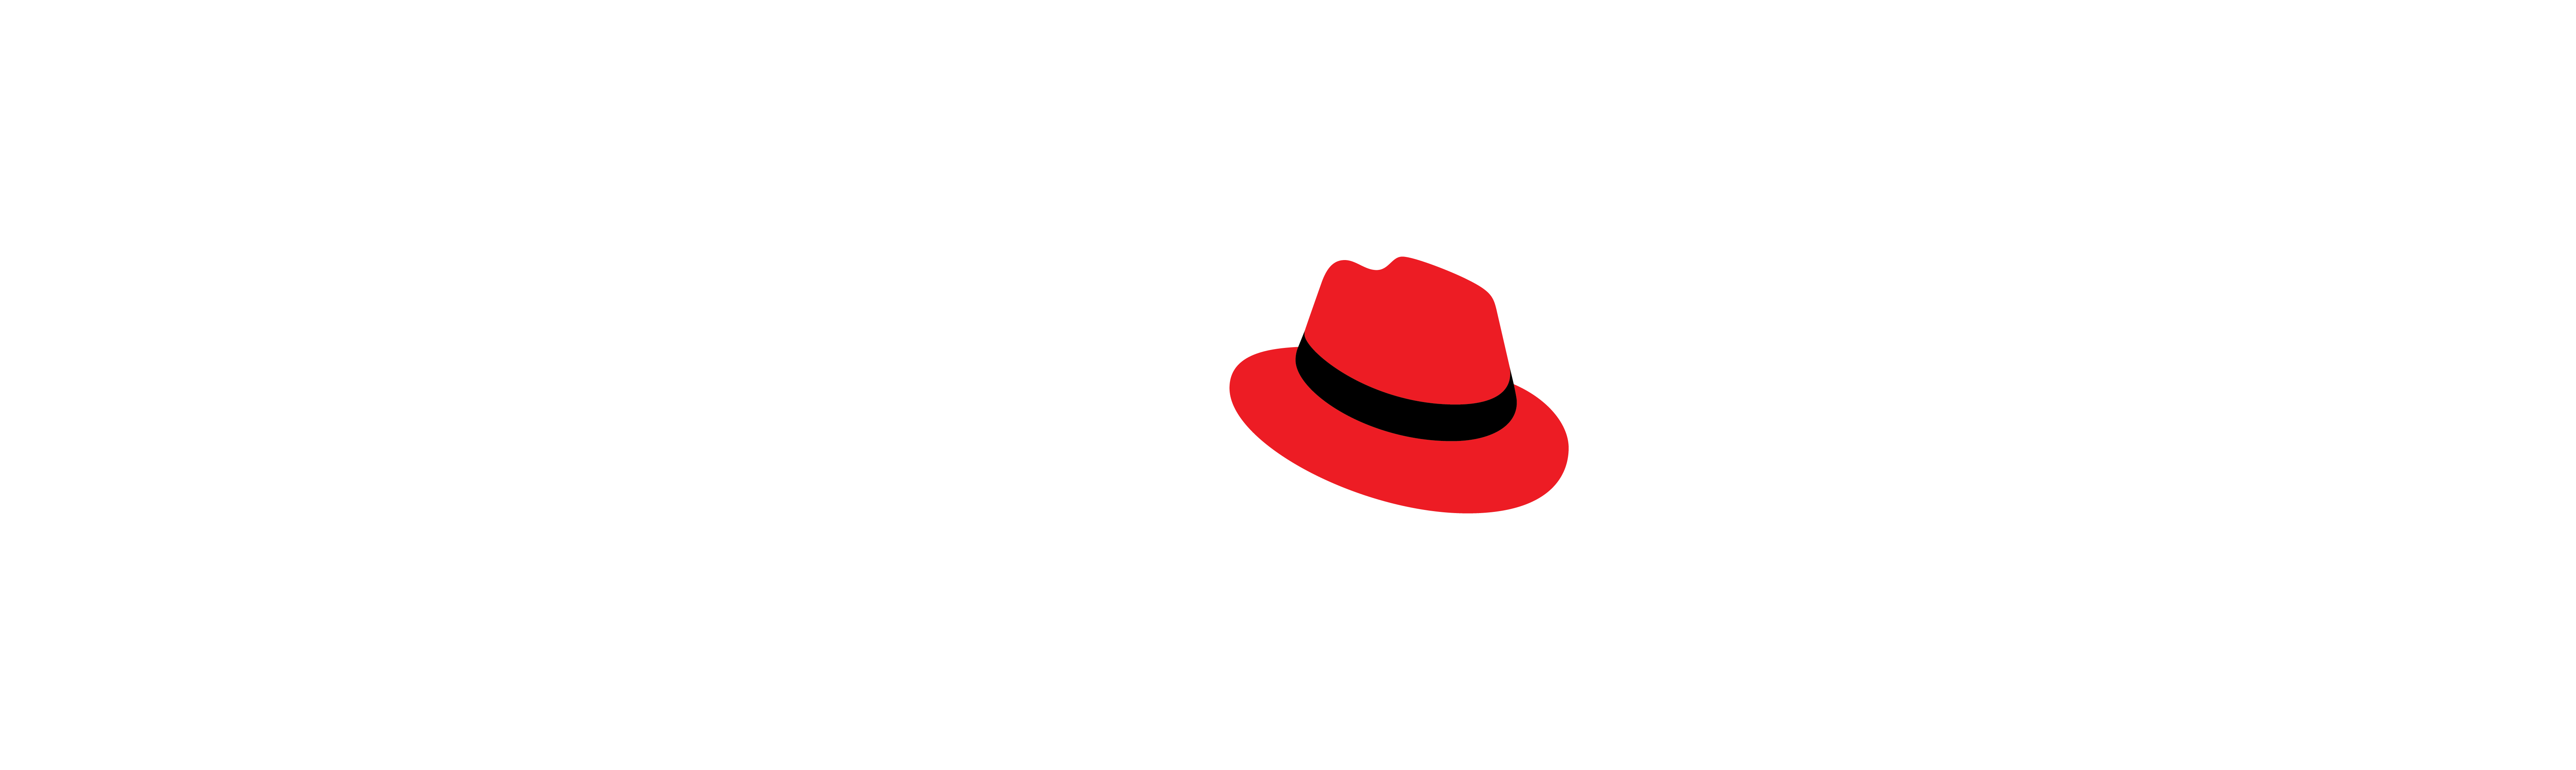 IBM and Red Hat logos